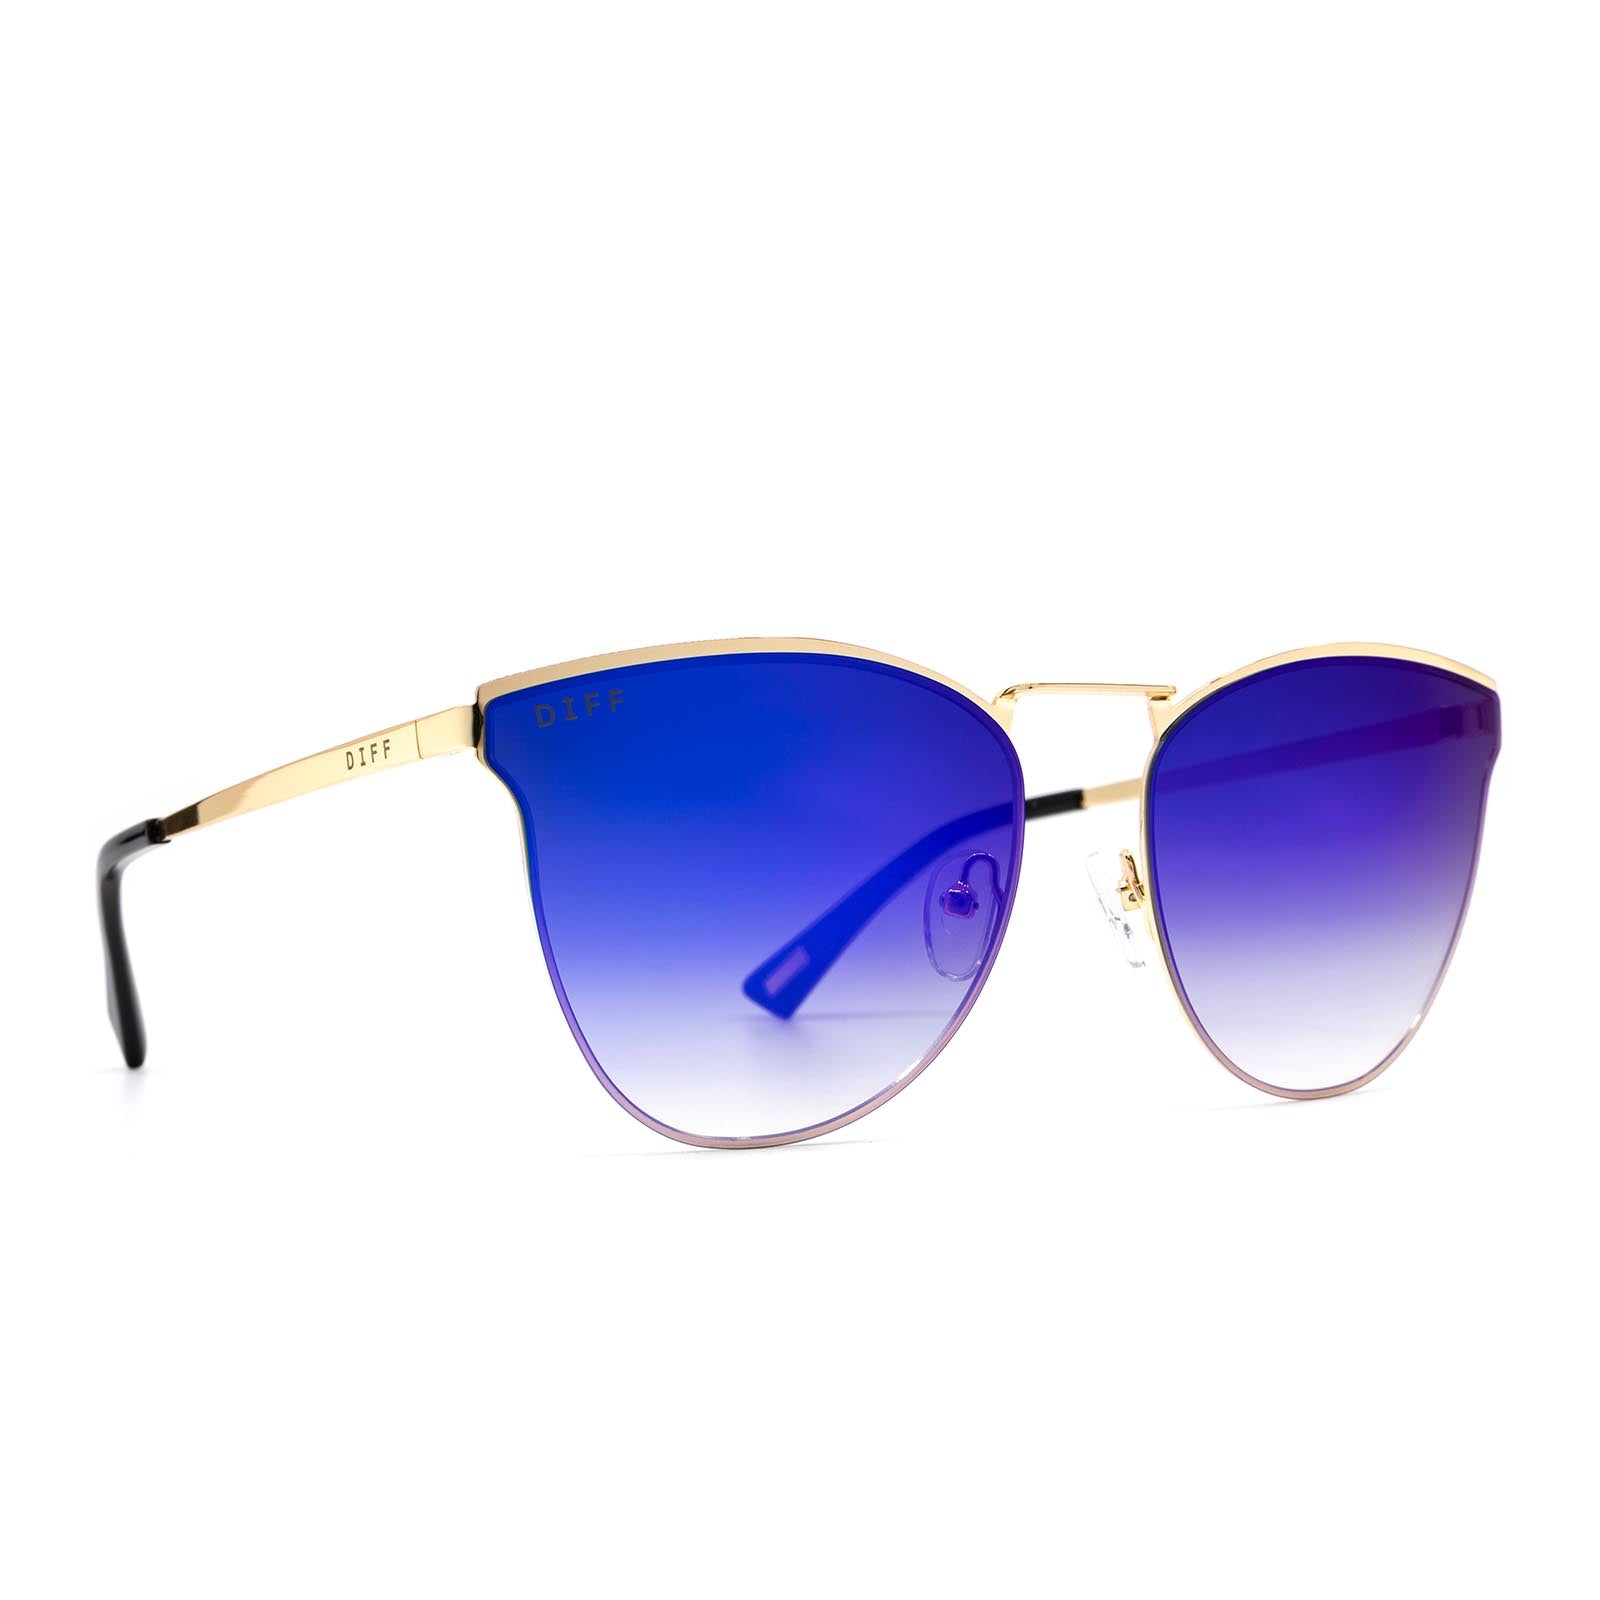 Sadie sunglasses with gold frame and purple lens- angle view